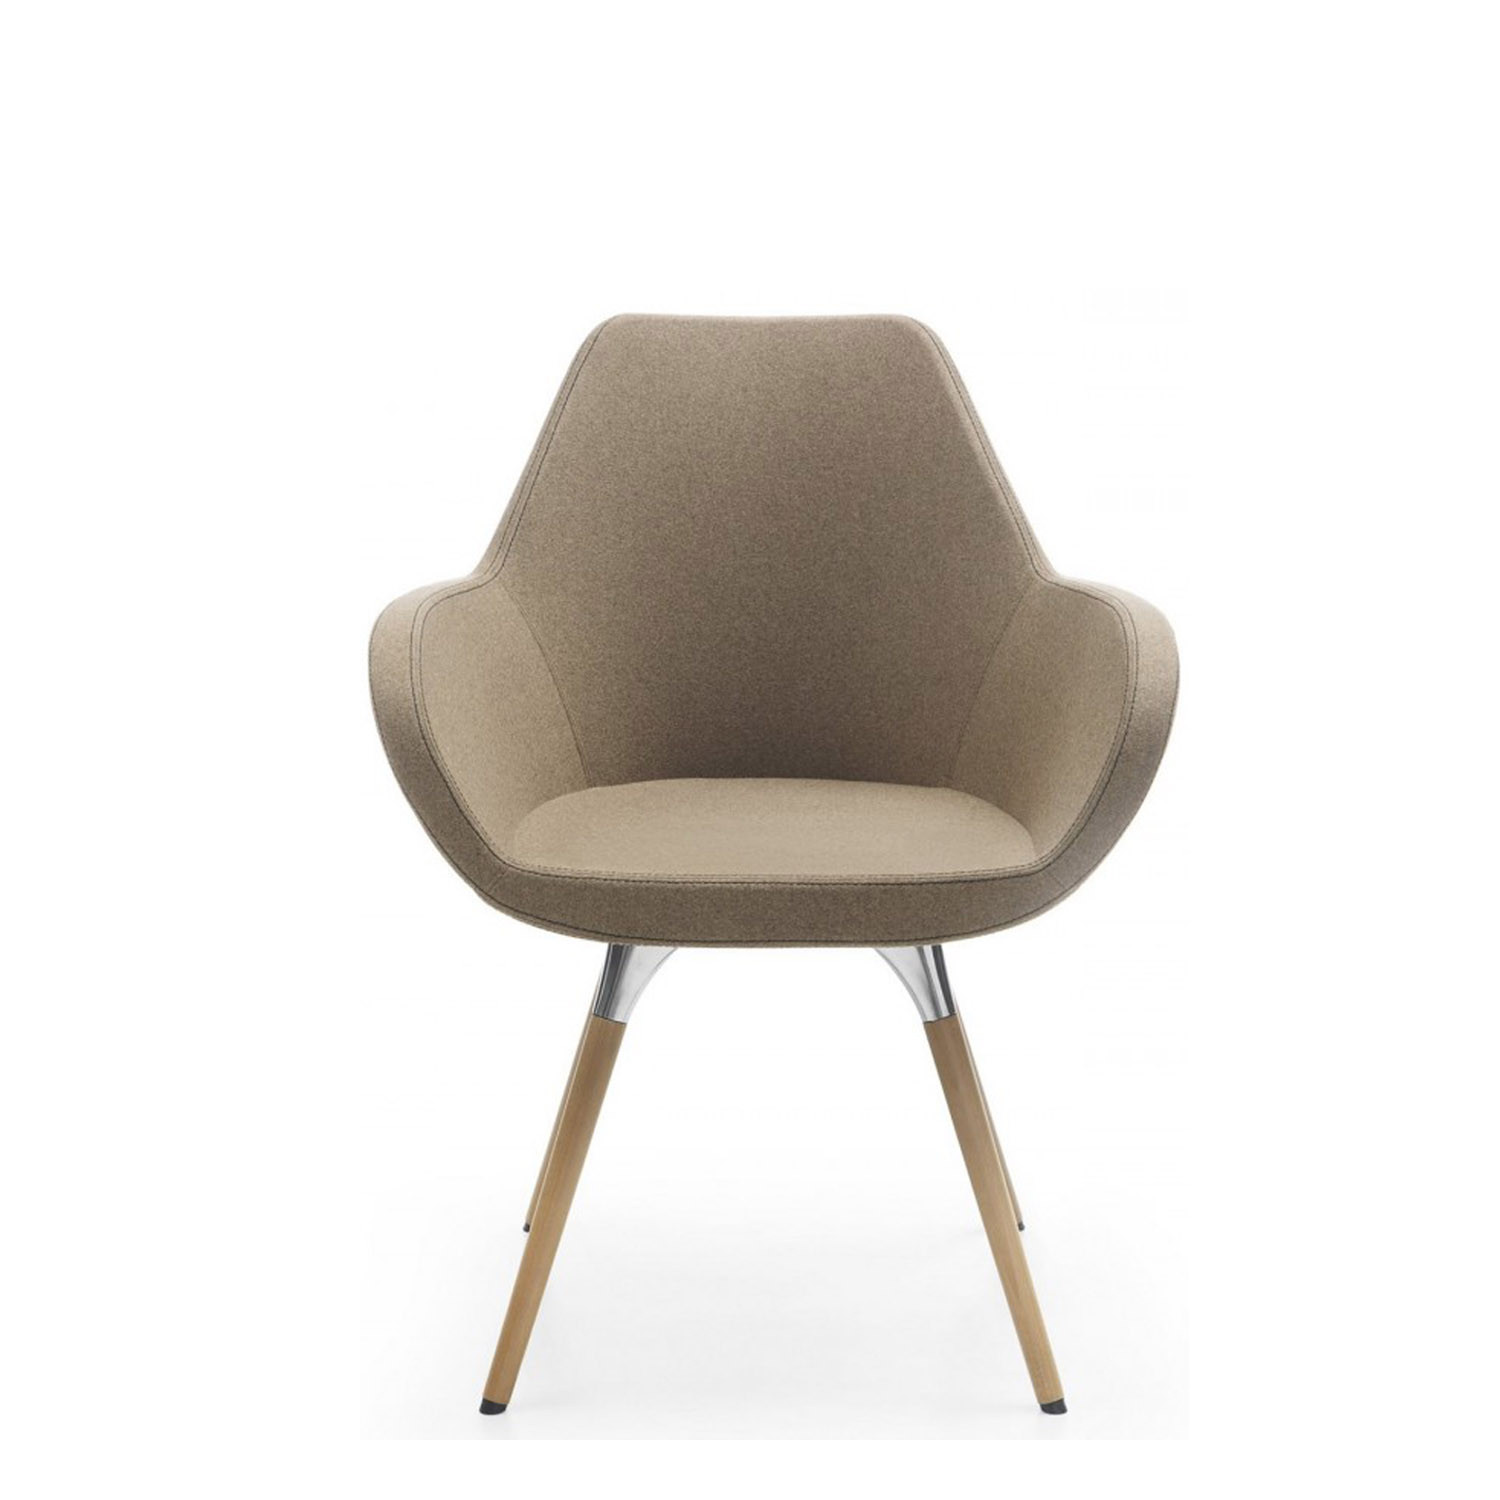 Reflex Wood Chair from Spacestor